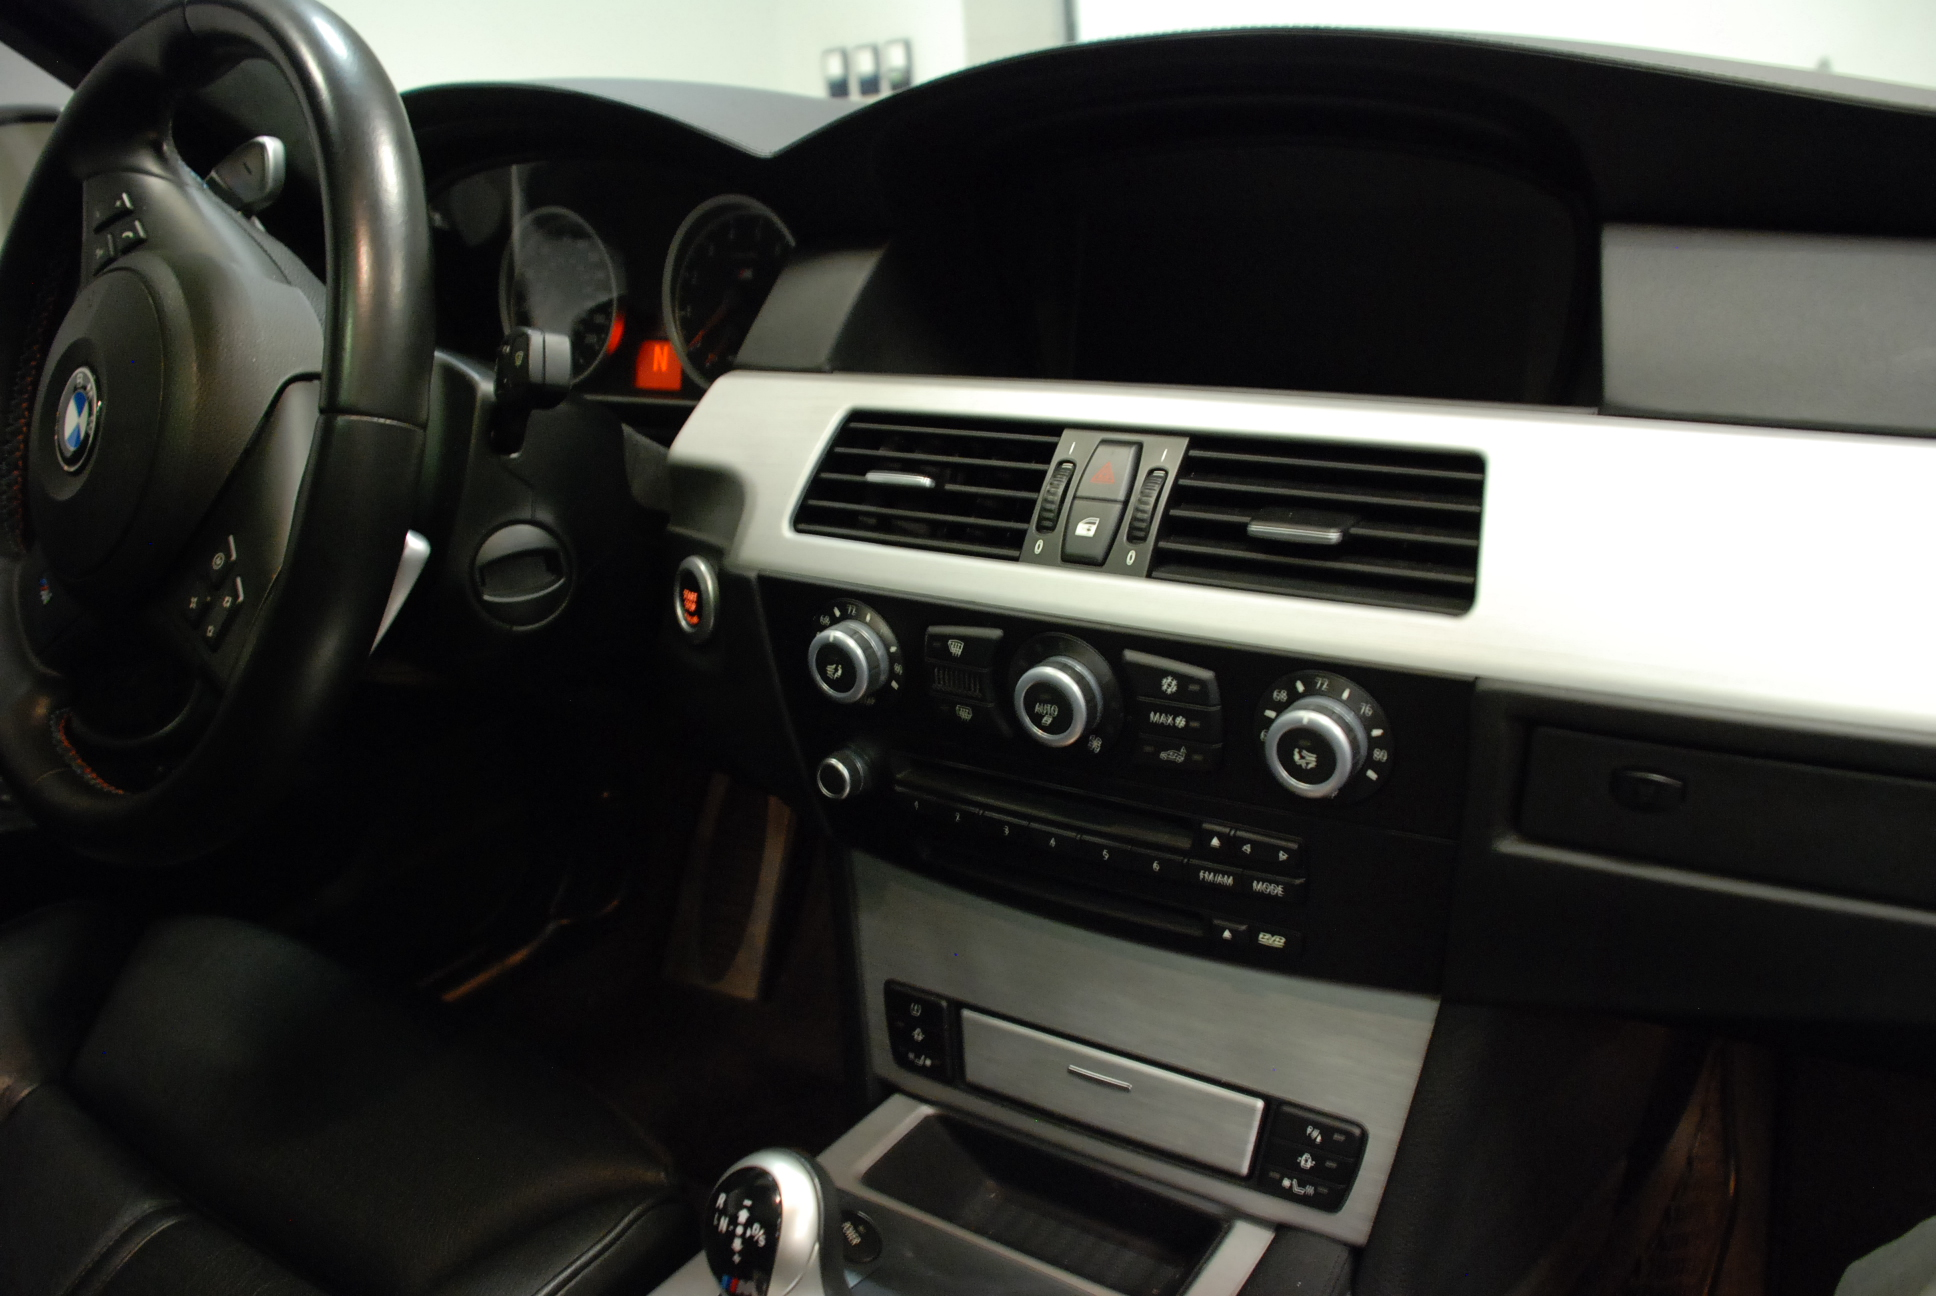 2008 bmw e60 m5 for sale!!!-dsc_0008.jpg